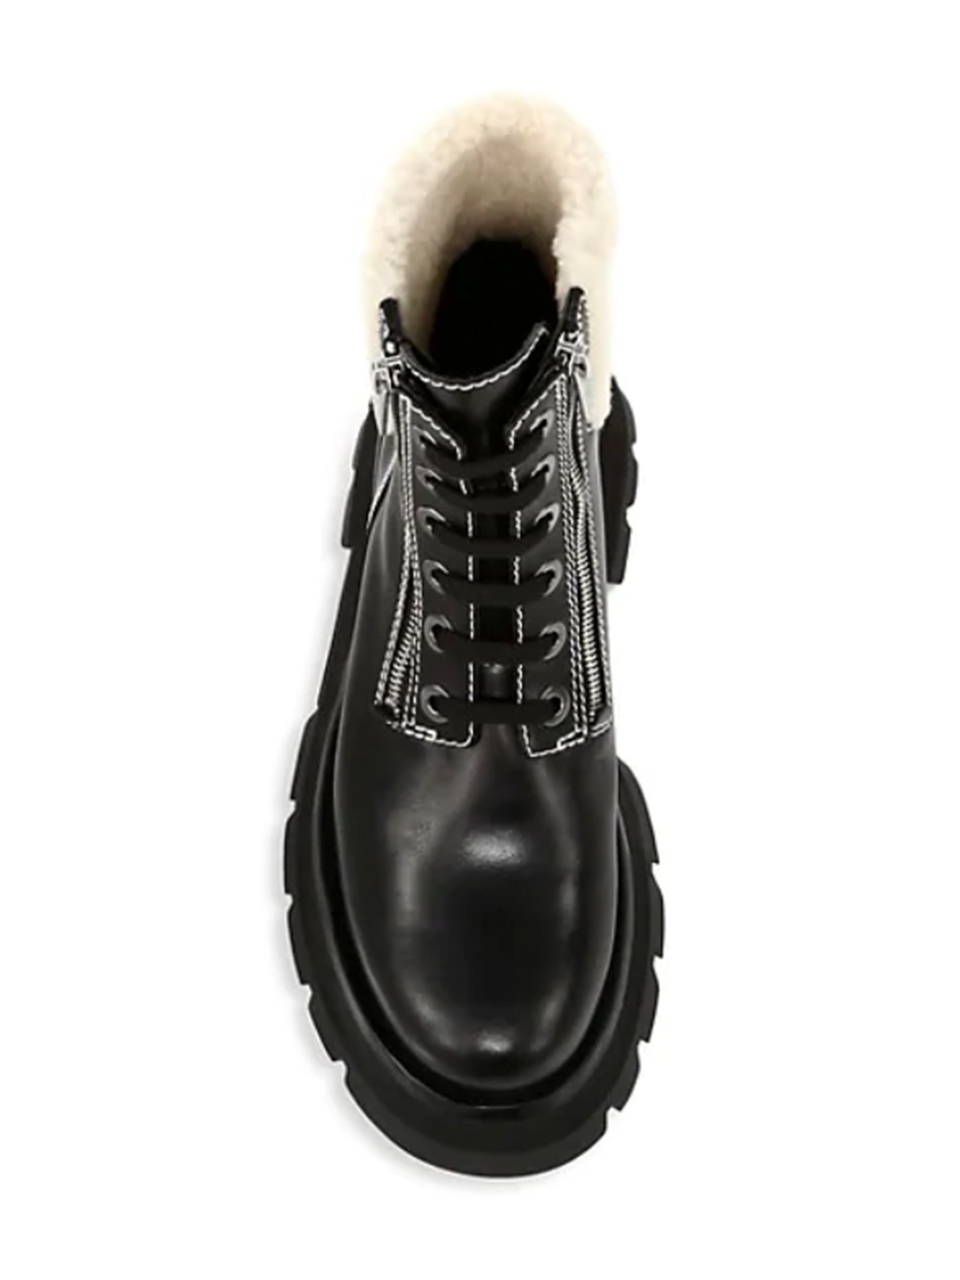 3.1 Phillip Lim Kate Lug Sole Shearling Boot Top View